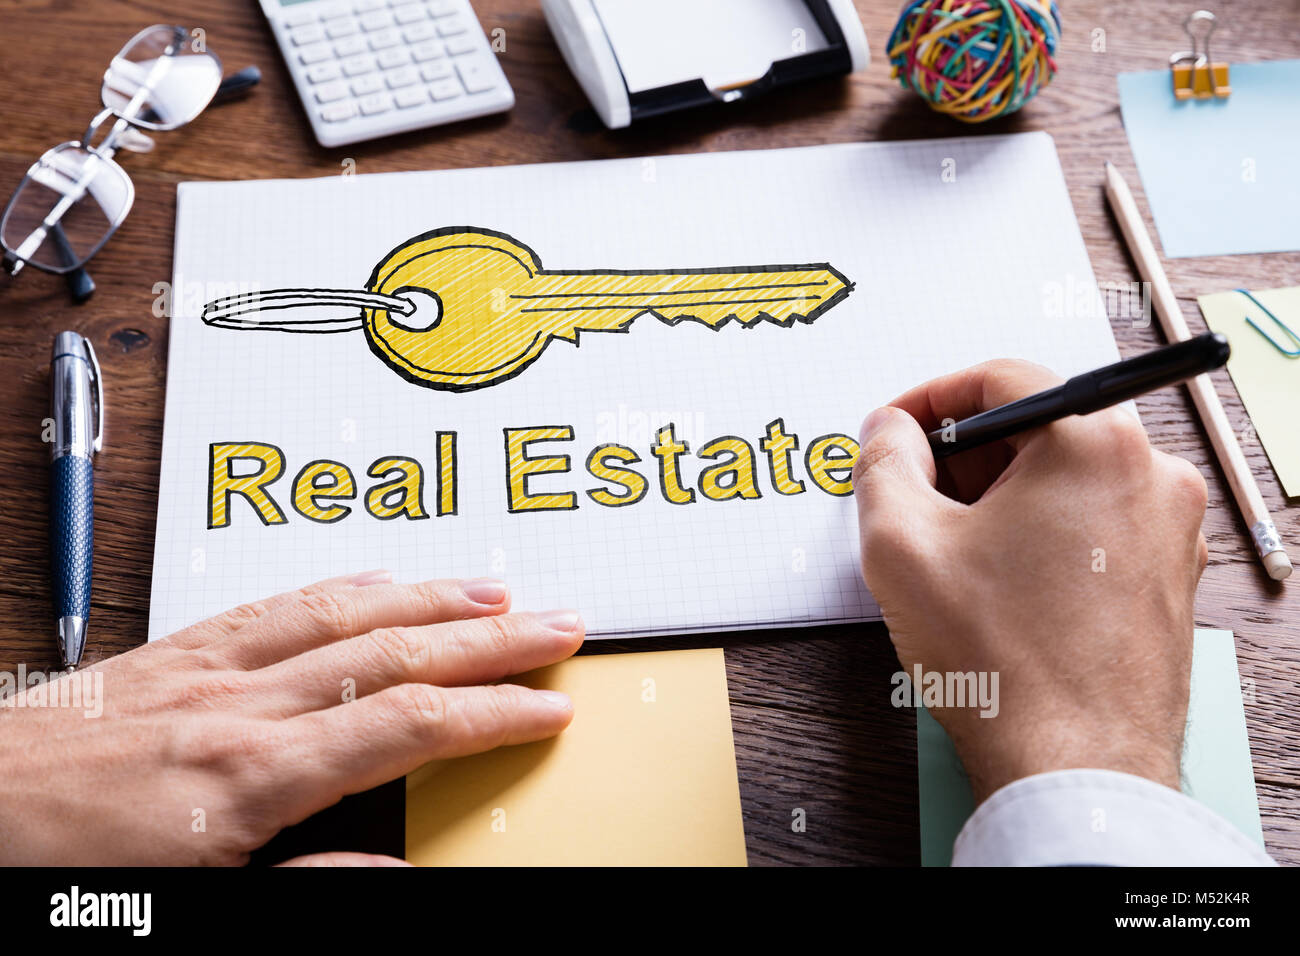 Close-up Of Person's Hand Drawing Real Estate Key On Paper - Stock Image